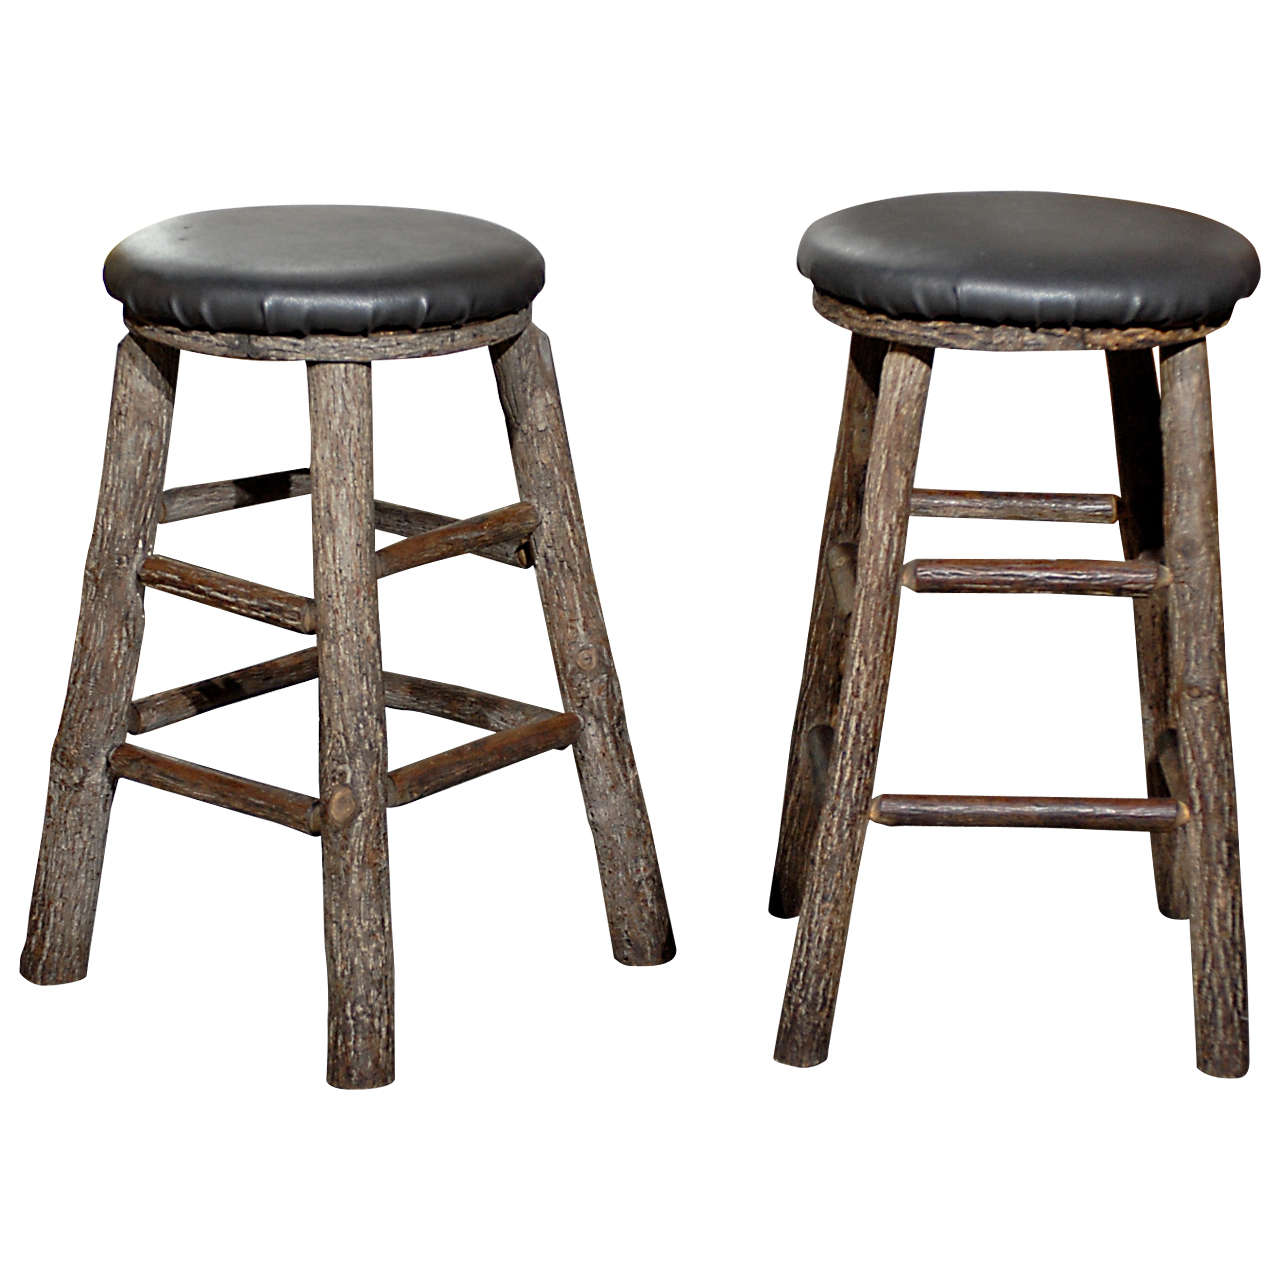 vintage bar stools for sale 12 vintage bar stools for at 1stdibs 8821